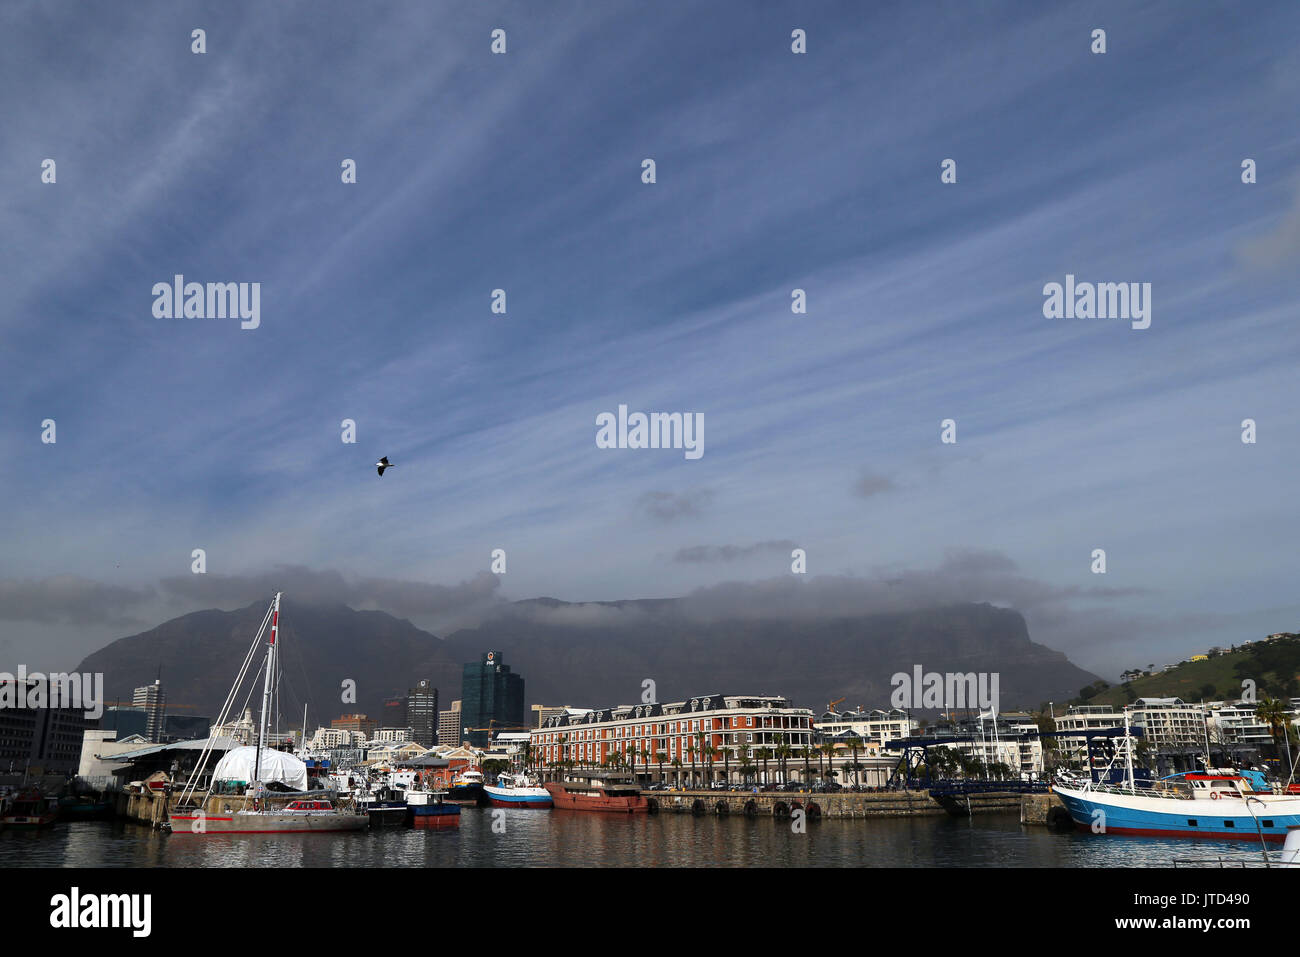 A view of the V&A Waterfront with Table Mountain and the Devil's Peak in the background in Cape Town, Western Cape, South Africa. - Stock Image